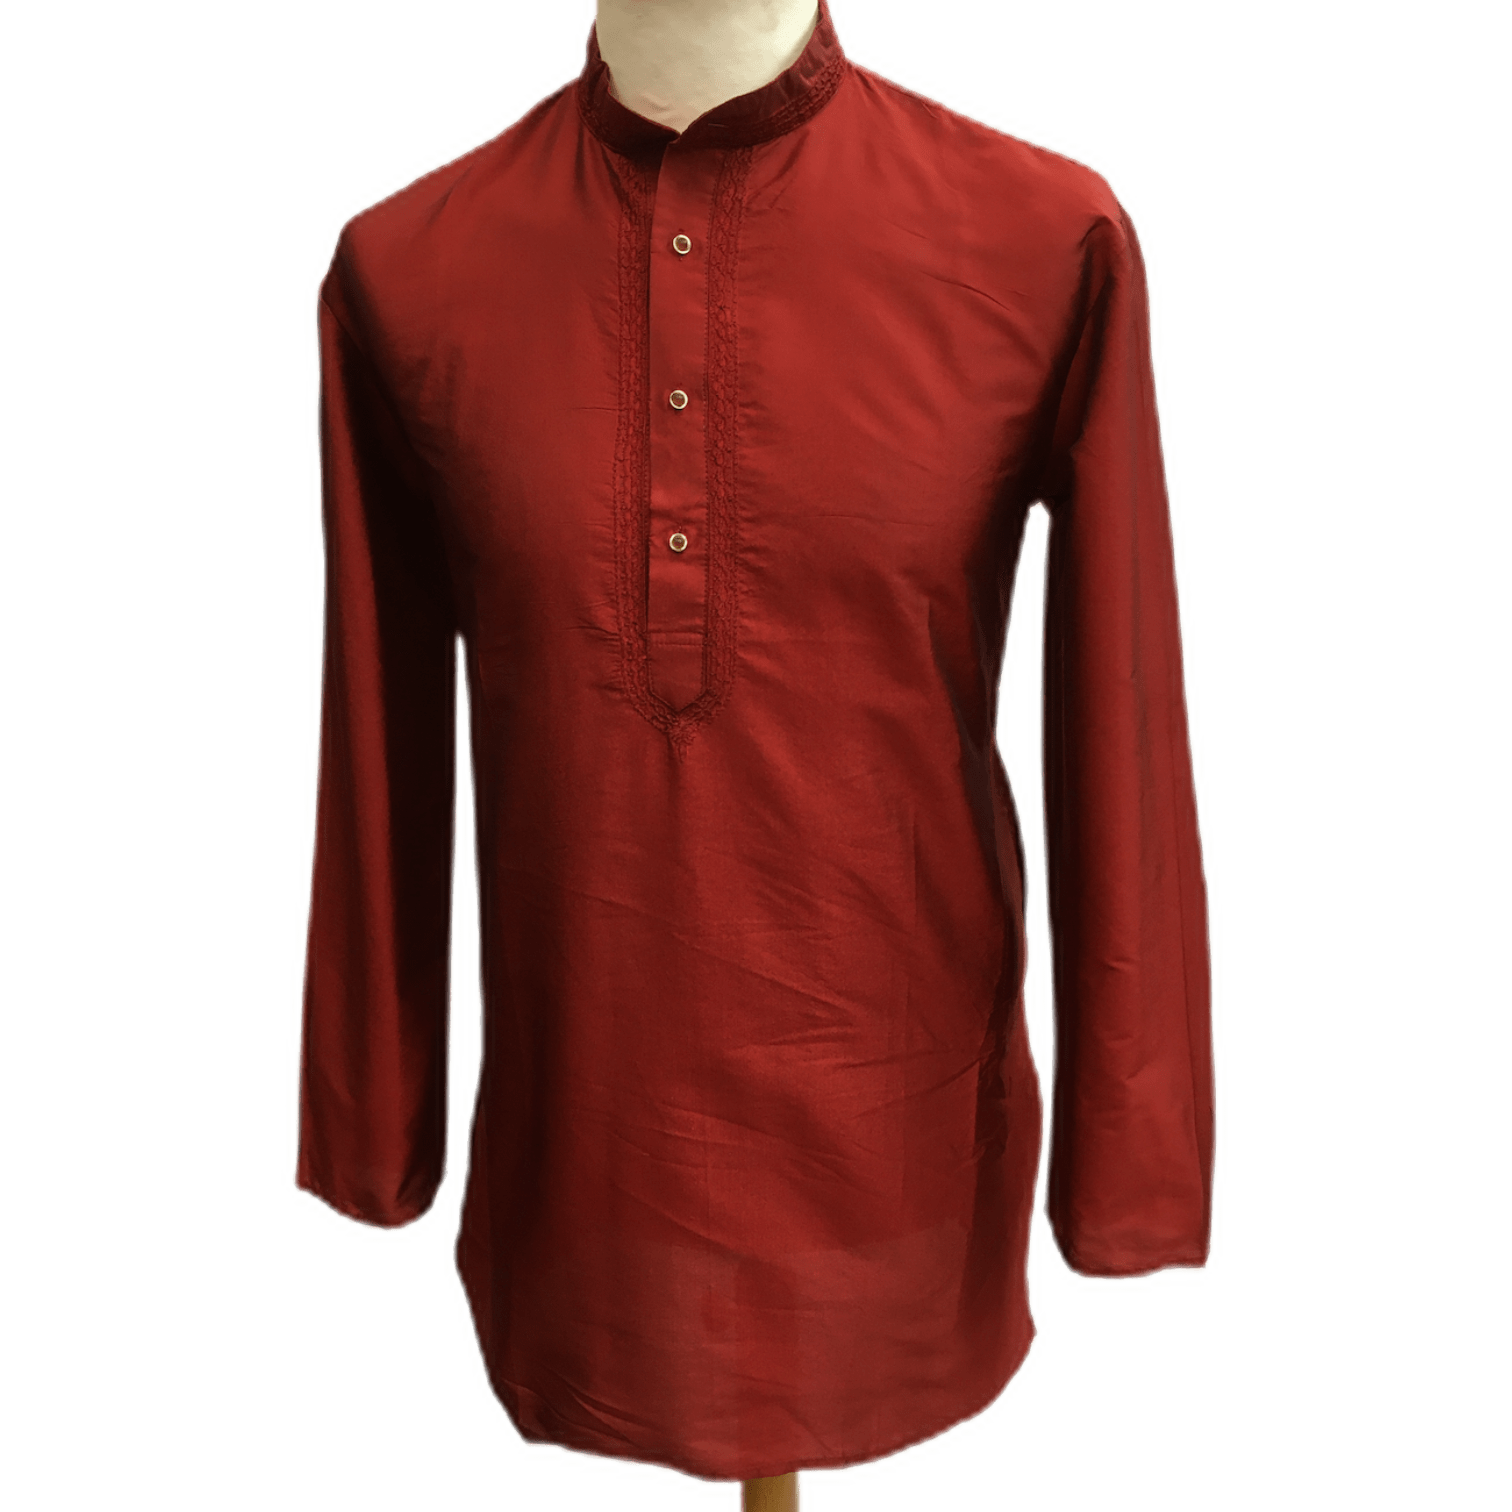 Mens Indian Dhoti Kurta Top in Maroon, Thigh Length, for weddings, Bollywood Party  - Adhish Rp1219